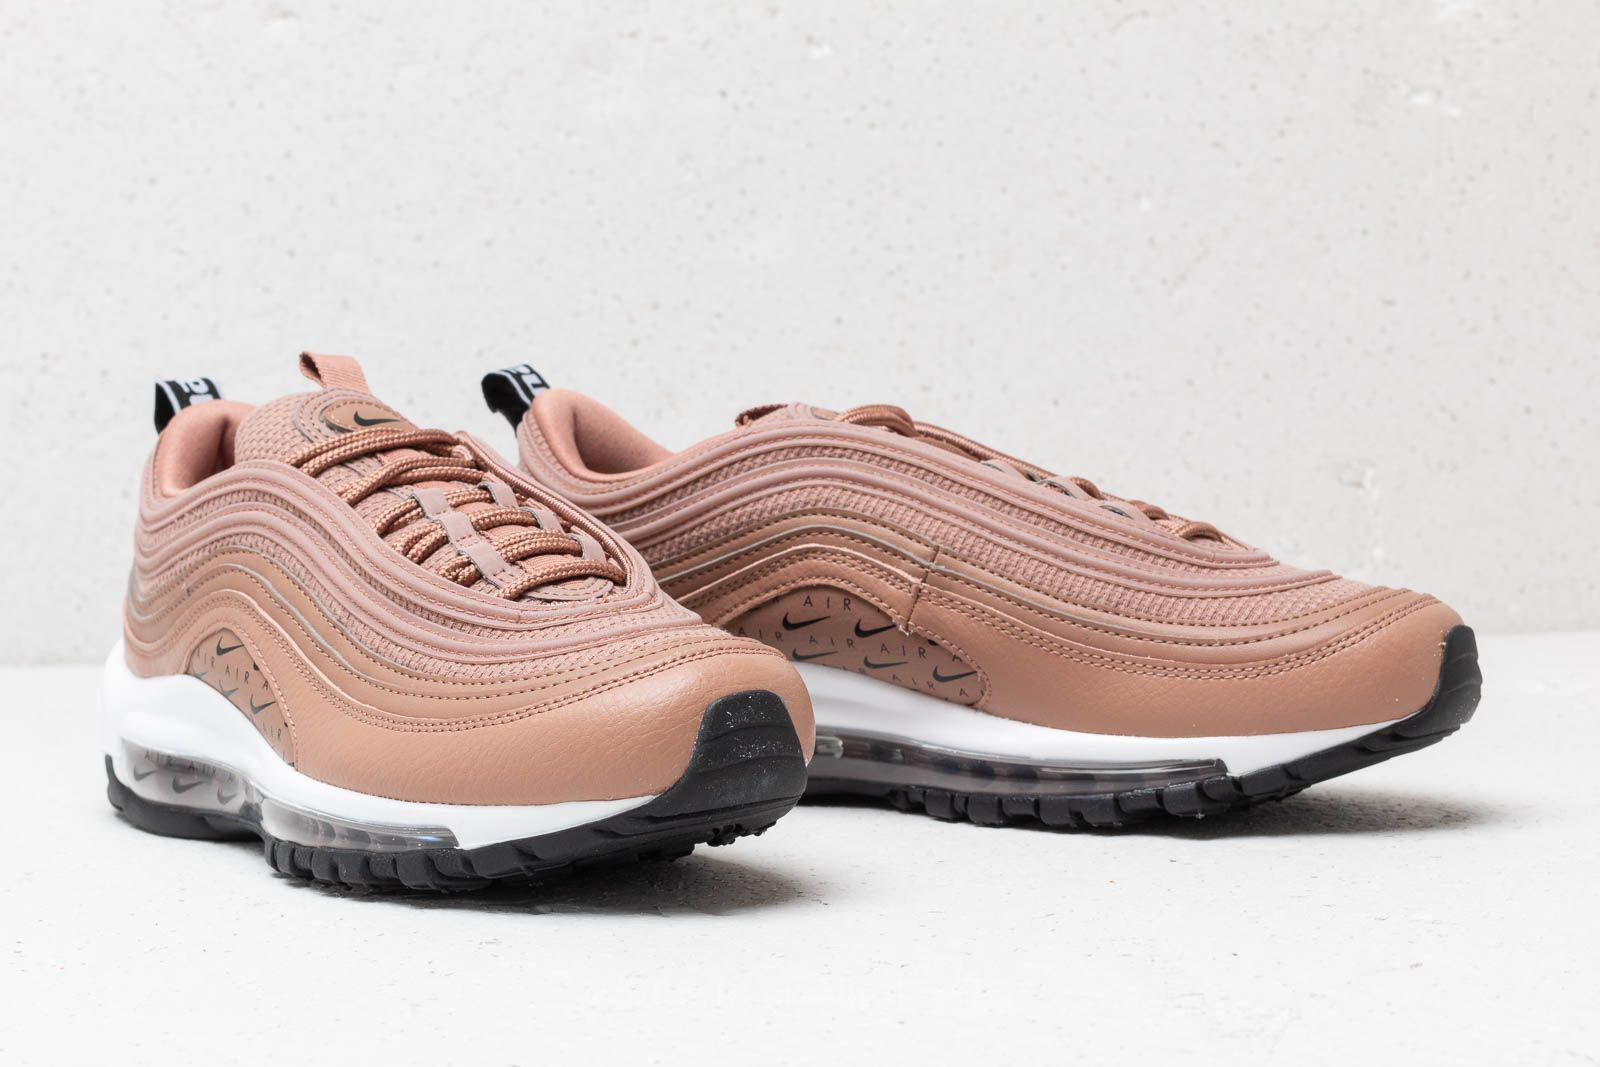 buy popular 8a3e1 bdc1c Nike W Air Max 97 Lx Desert Dust  Desert Dust-black - Lyst